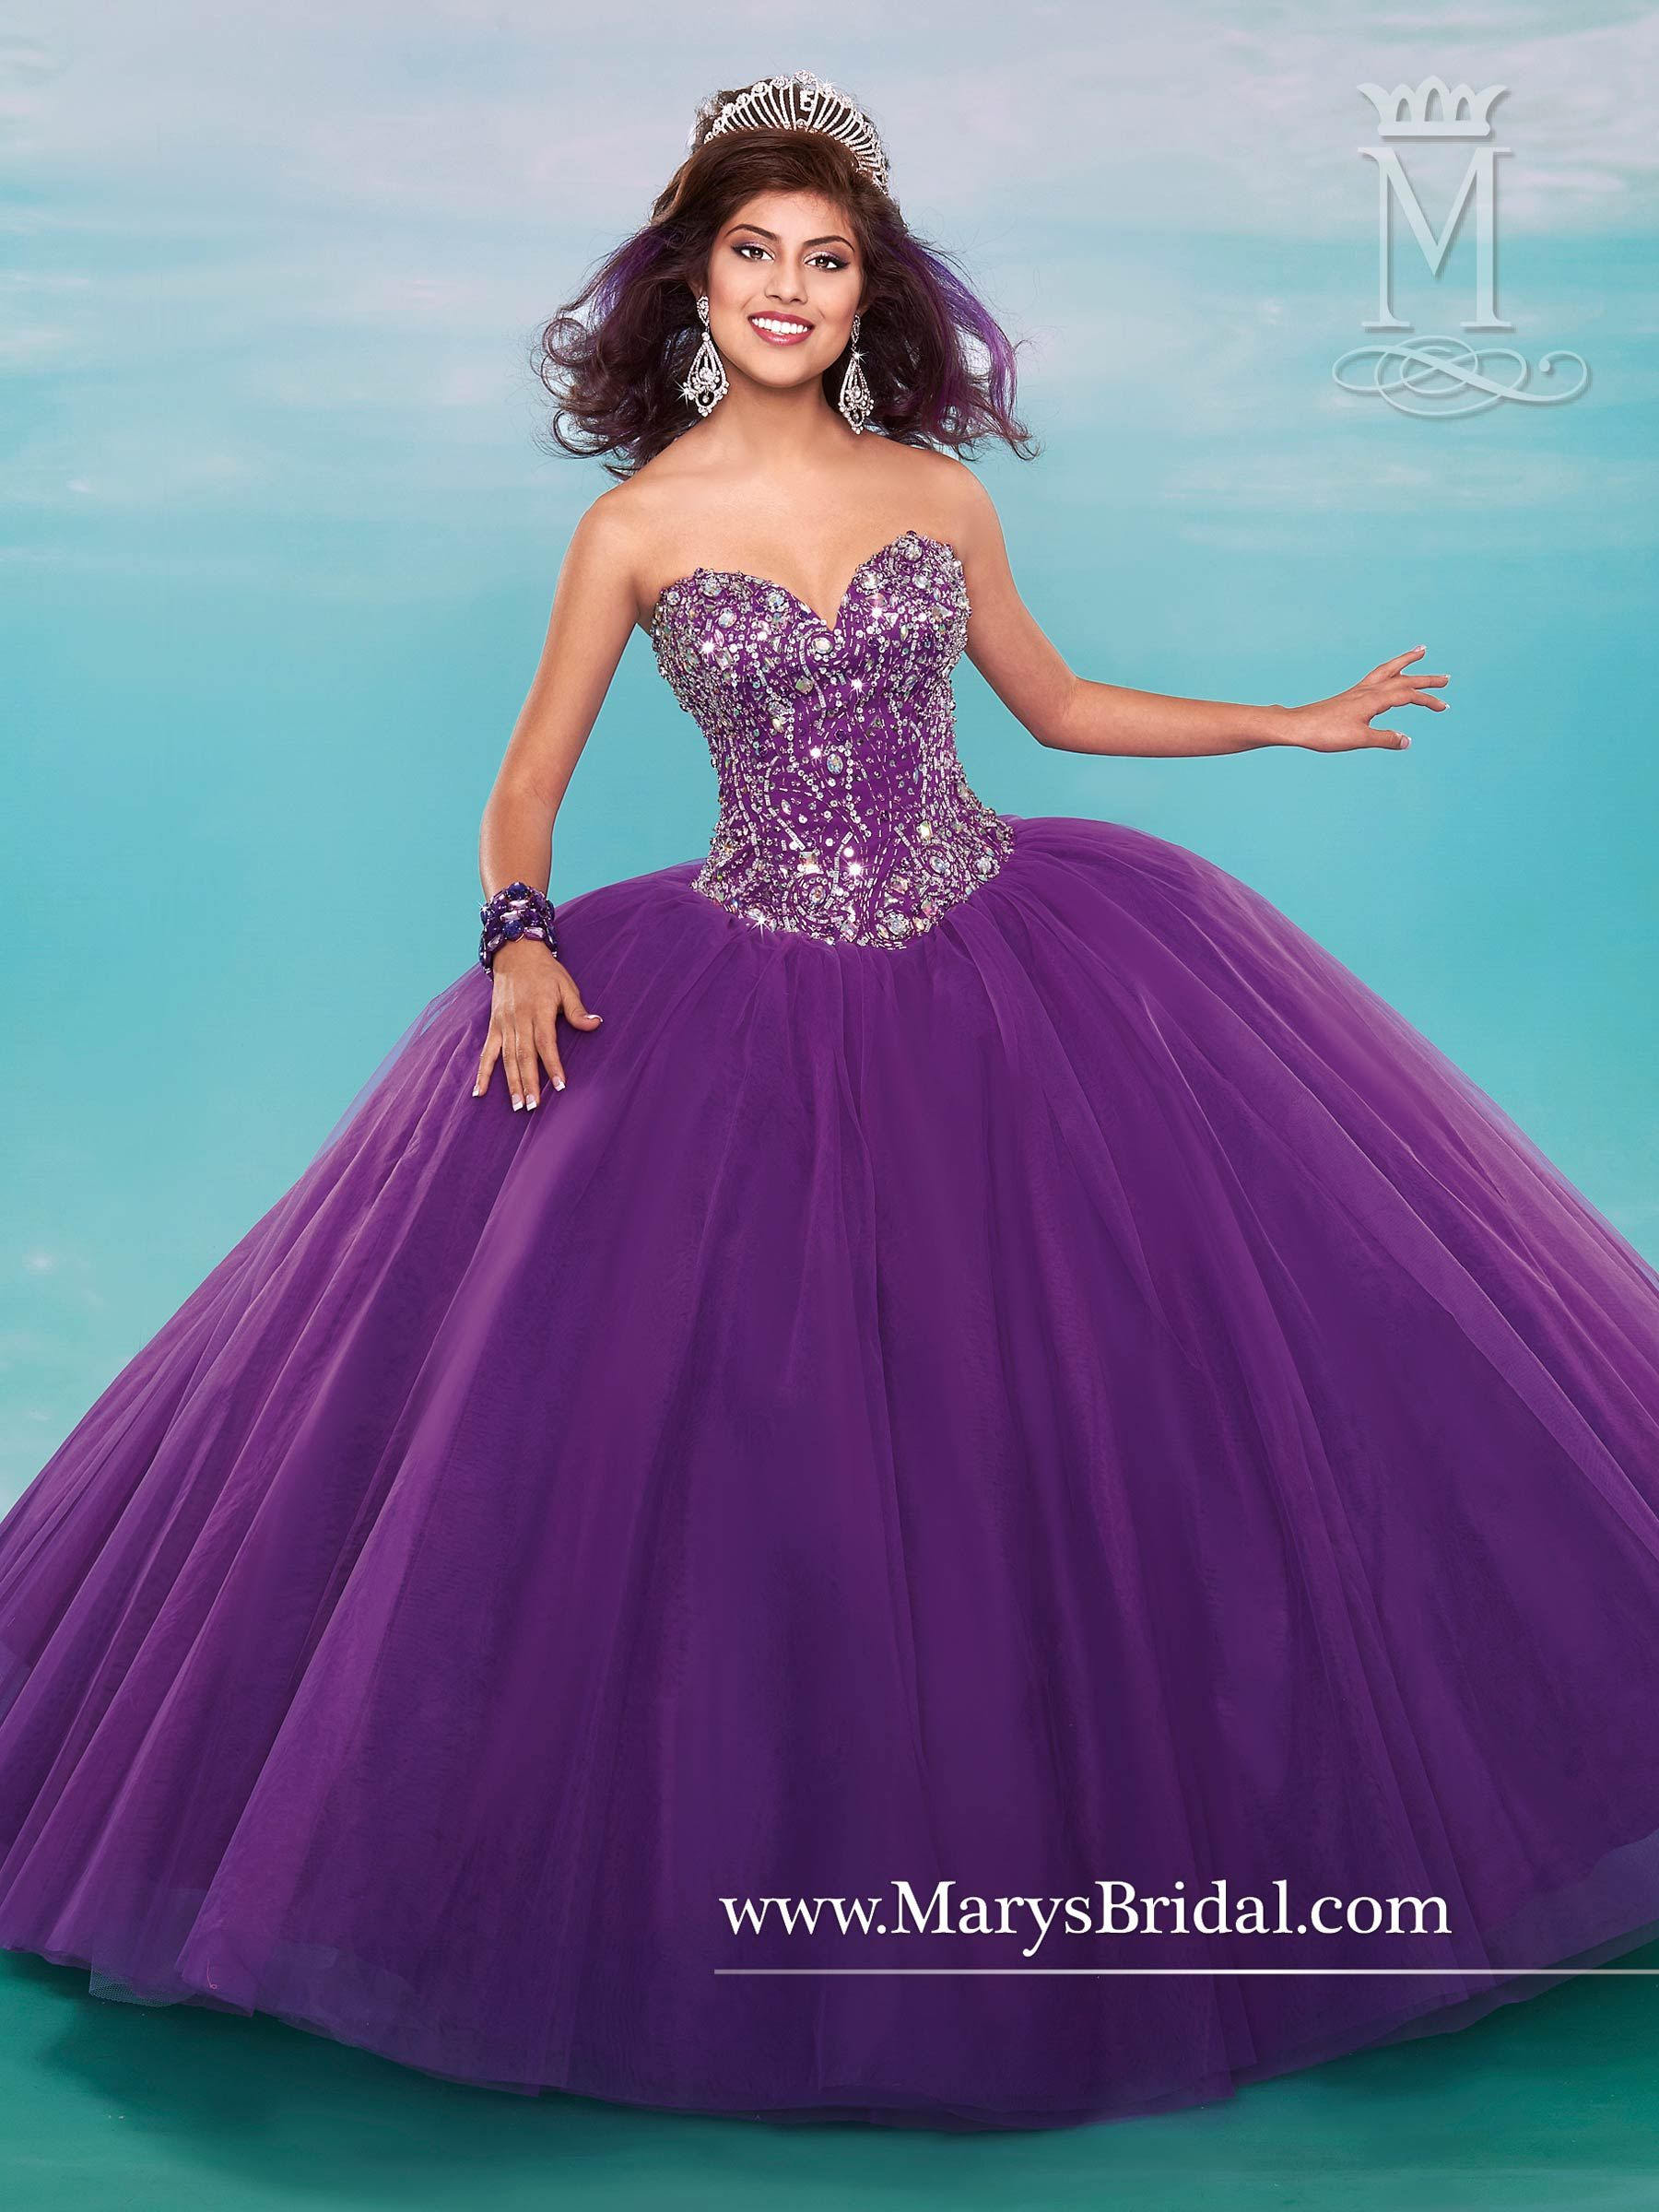 Mary's Bridal Princess Collection Quinceanera Dress Style